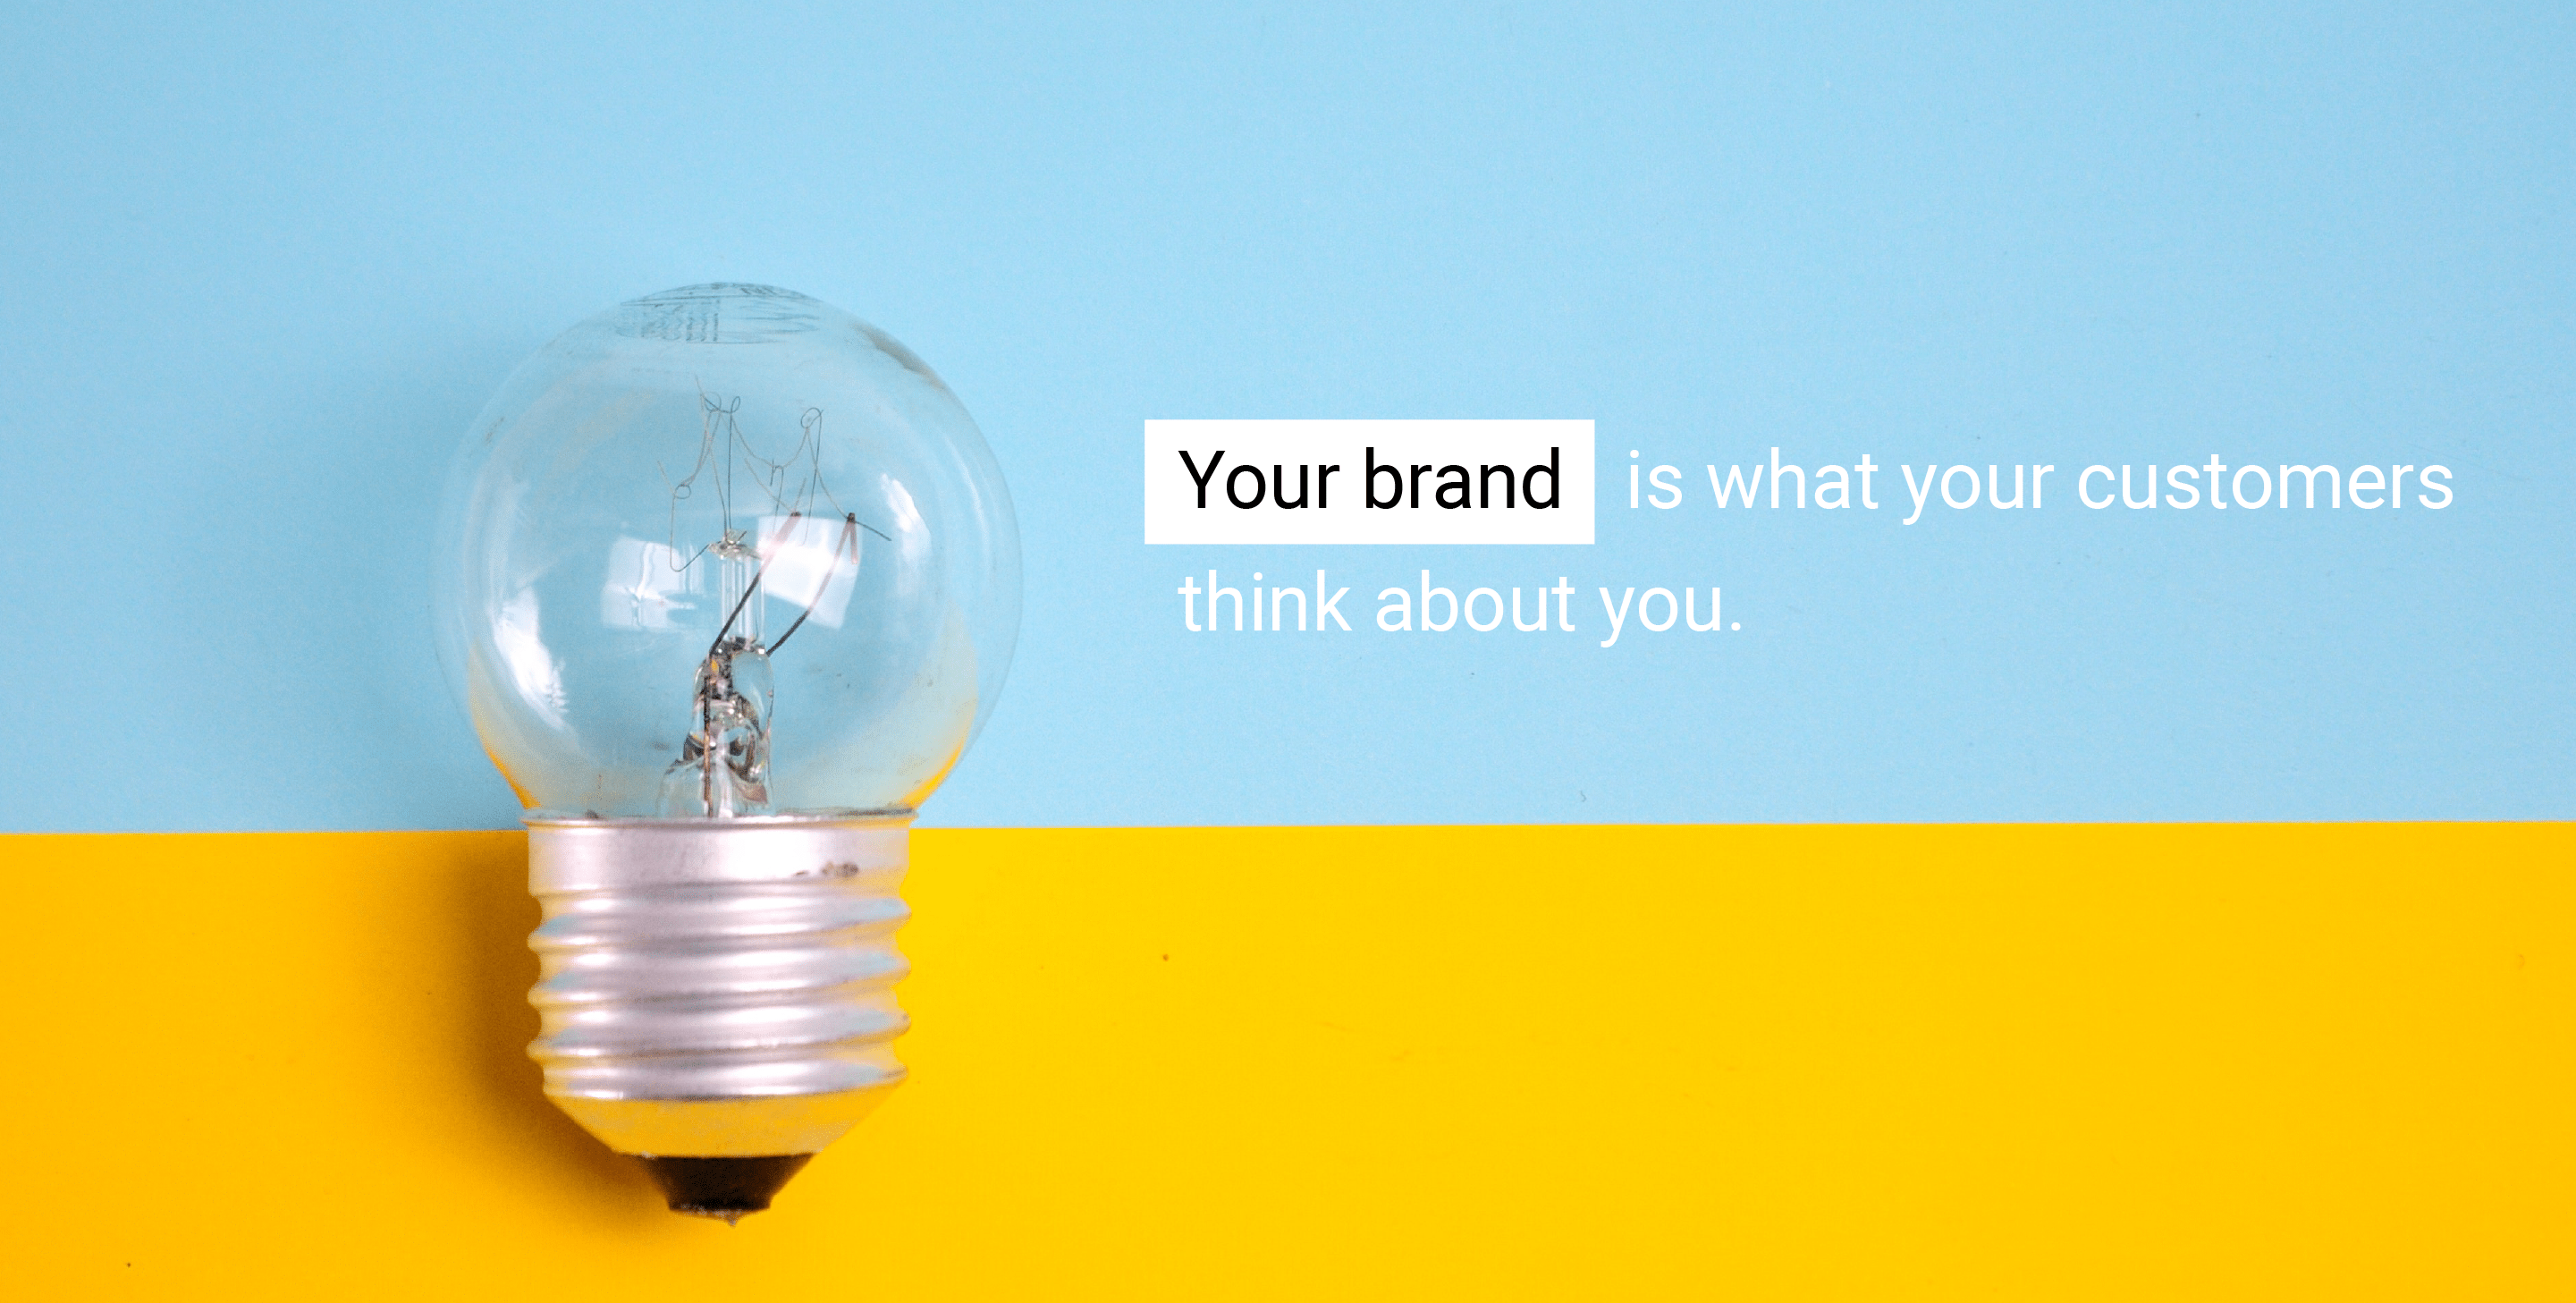 Your brand is what your customers think about you.